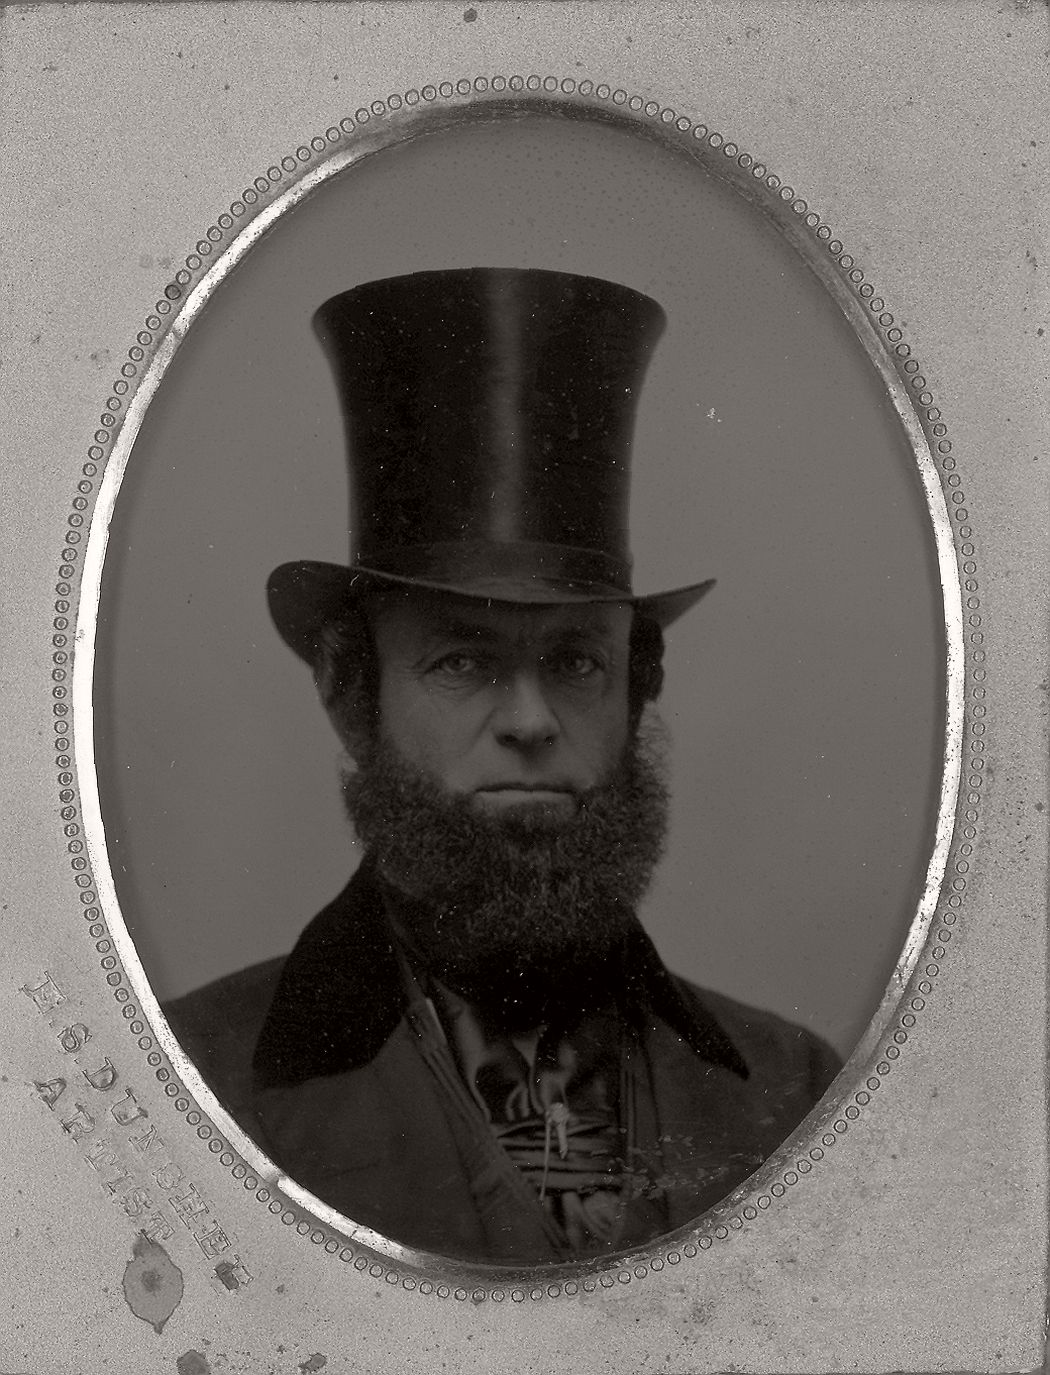 victorian-era-daguerreotype-of-men-in-hat-1850s-xix-century-18